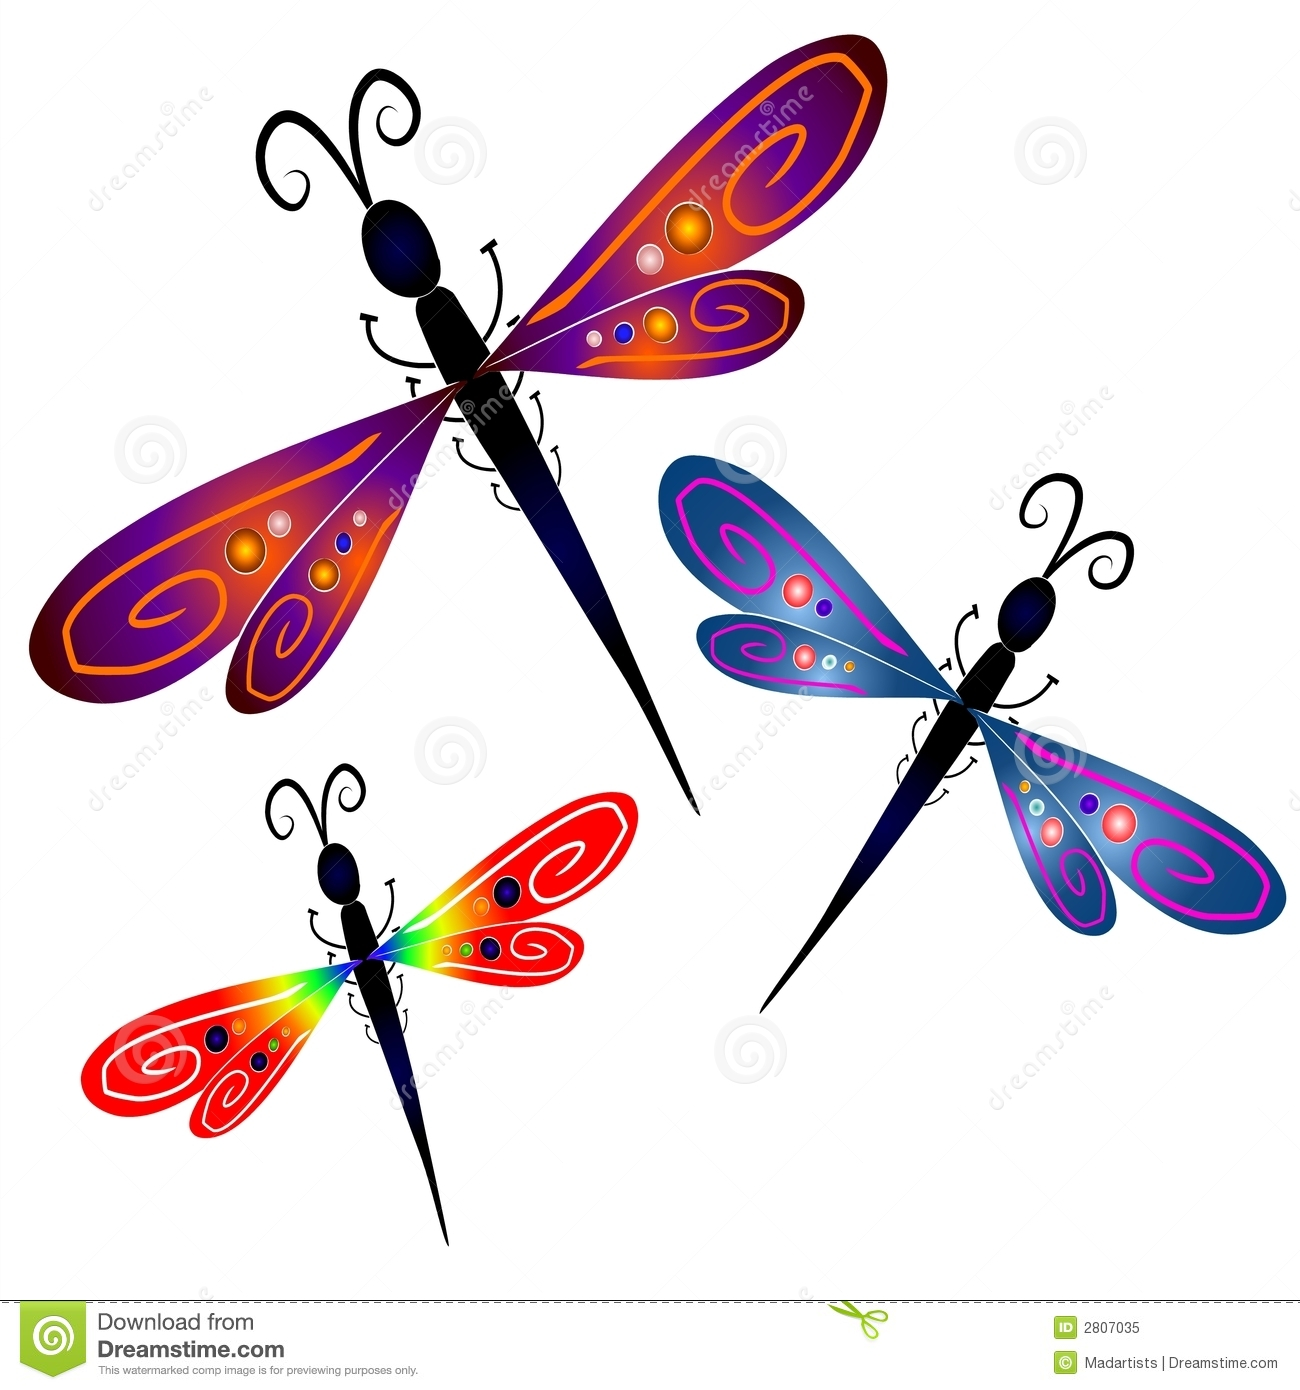 abstract dragonfly clip art stock illustration illustration of rh dreamstime com Dragonfly Clip Art Black and White dragonfly clip art free images